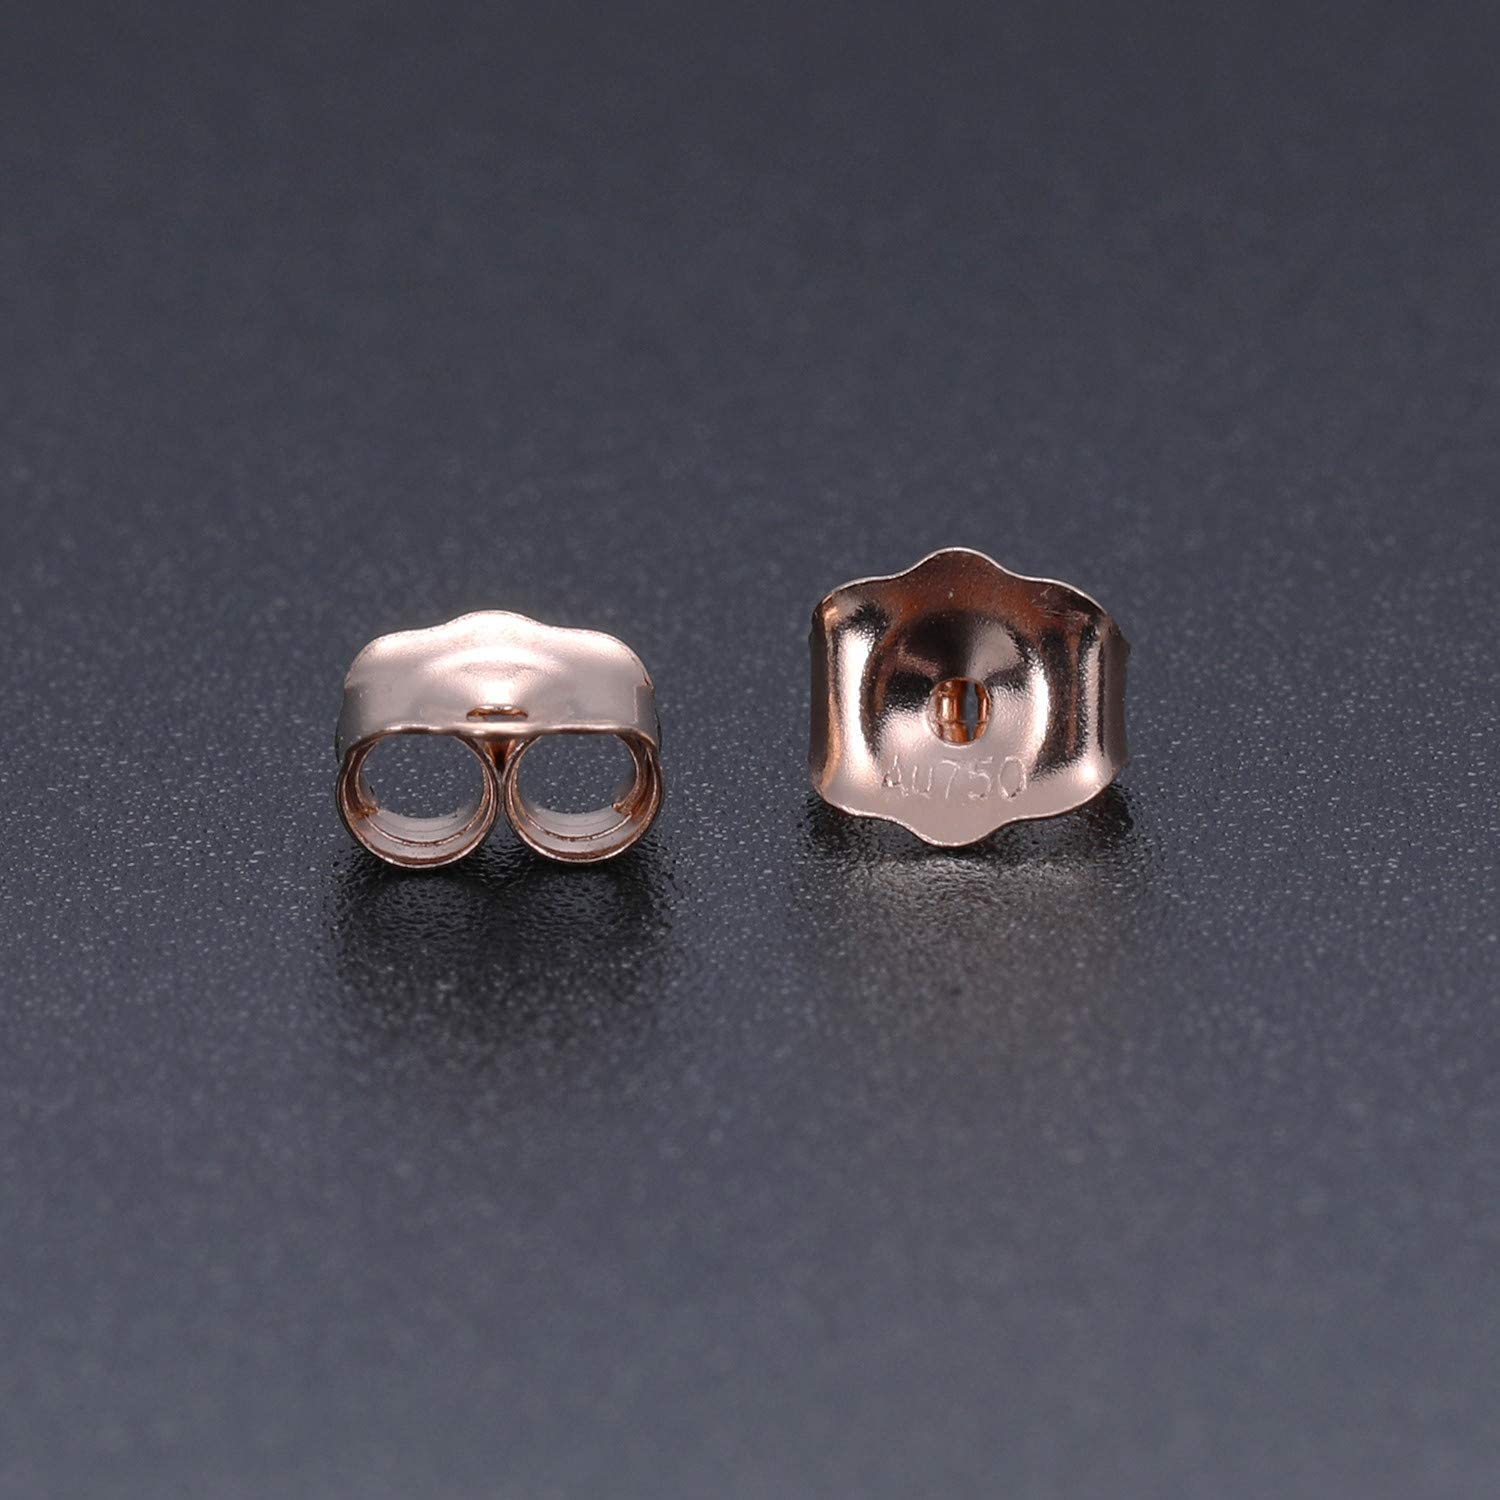 Earring Backs 18K Gold//White Gold//Rose Gold Earring Backings Hypoallergenic Butterfly Ear Extra Post Findings Safety for Studs